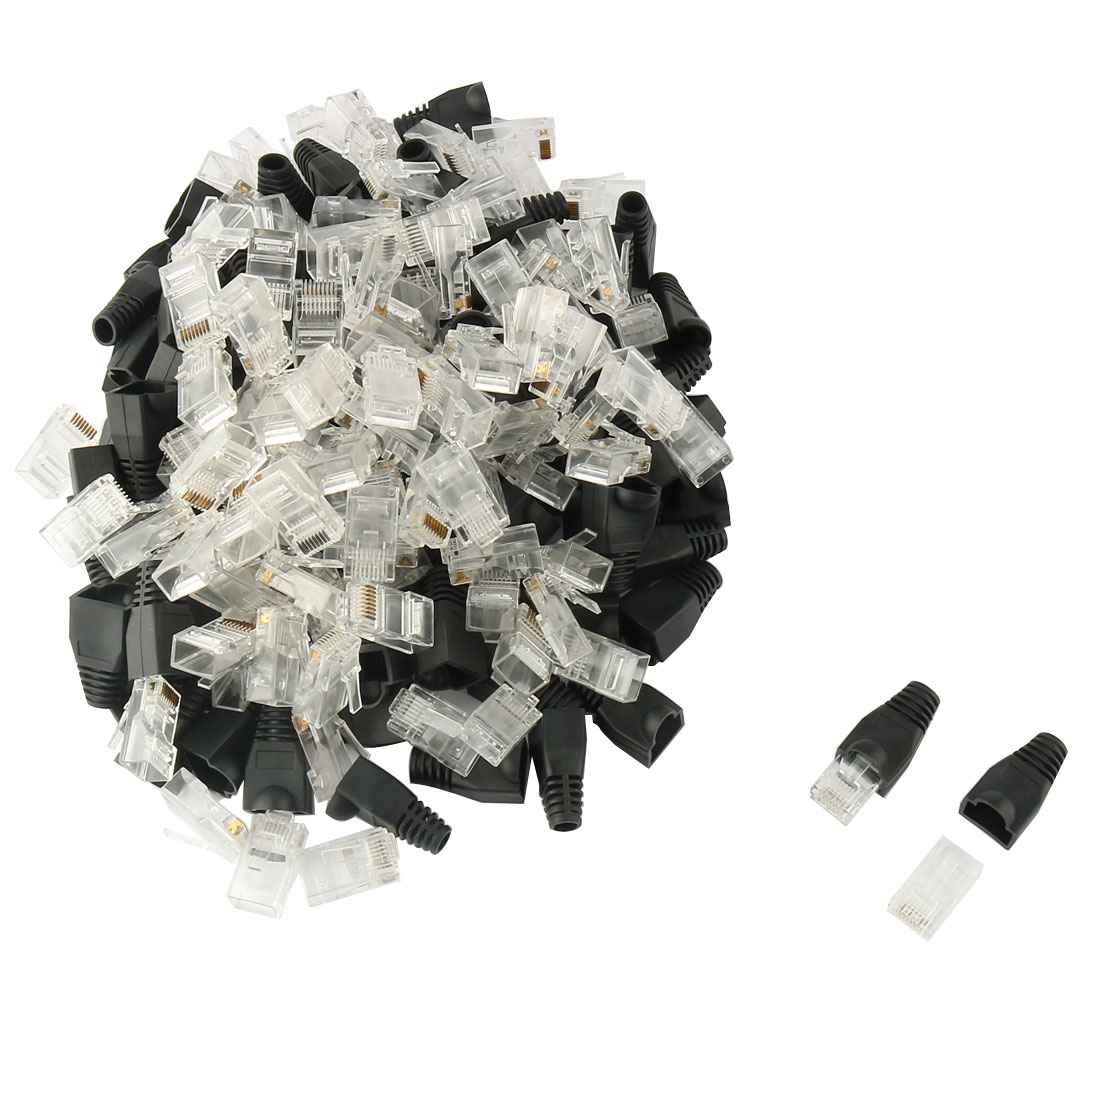 100 Pcs 8P8C Cat6 Patch RJ45 Crystal Cover Modular Plug Adapter w Black Protector